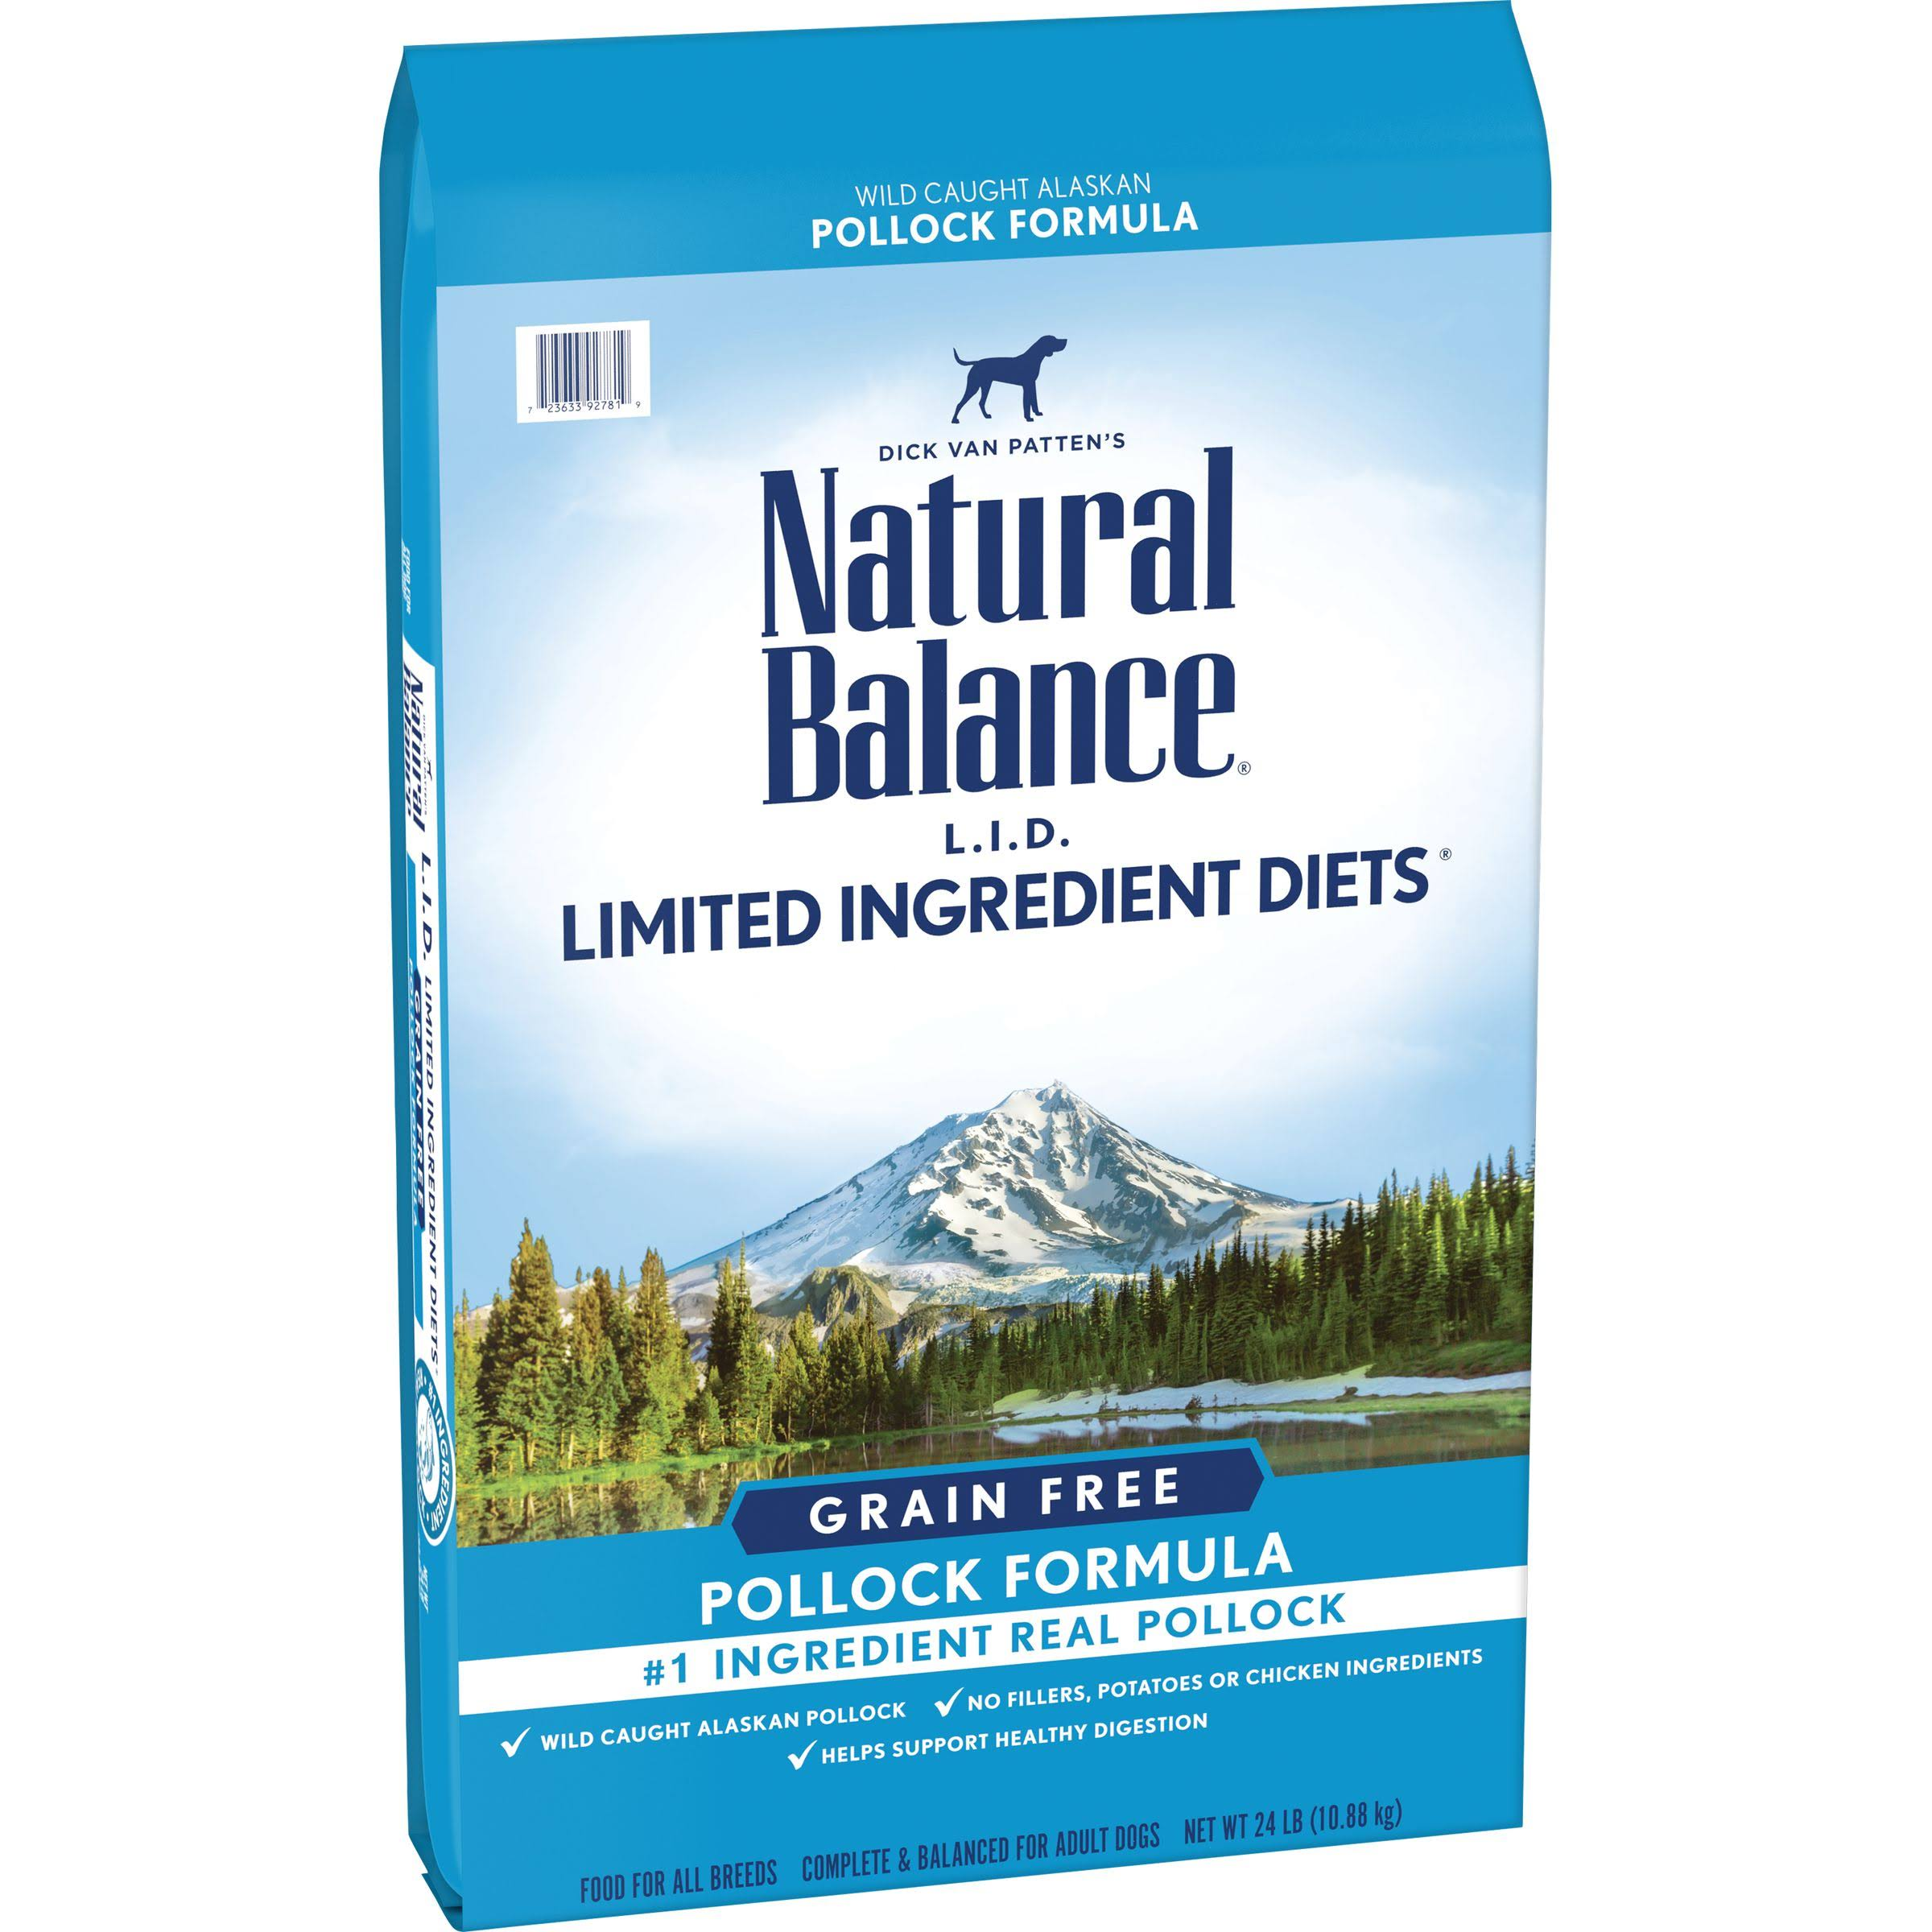 Natural Balance L.I.D. Limited Ingredient Diets Grain Free High Protein Pollock Formula Dry Dog Food (24 lb)